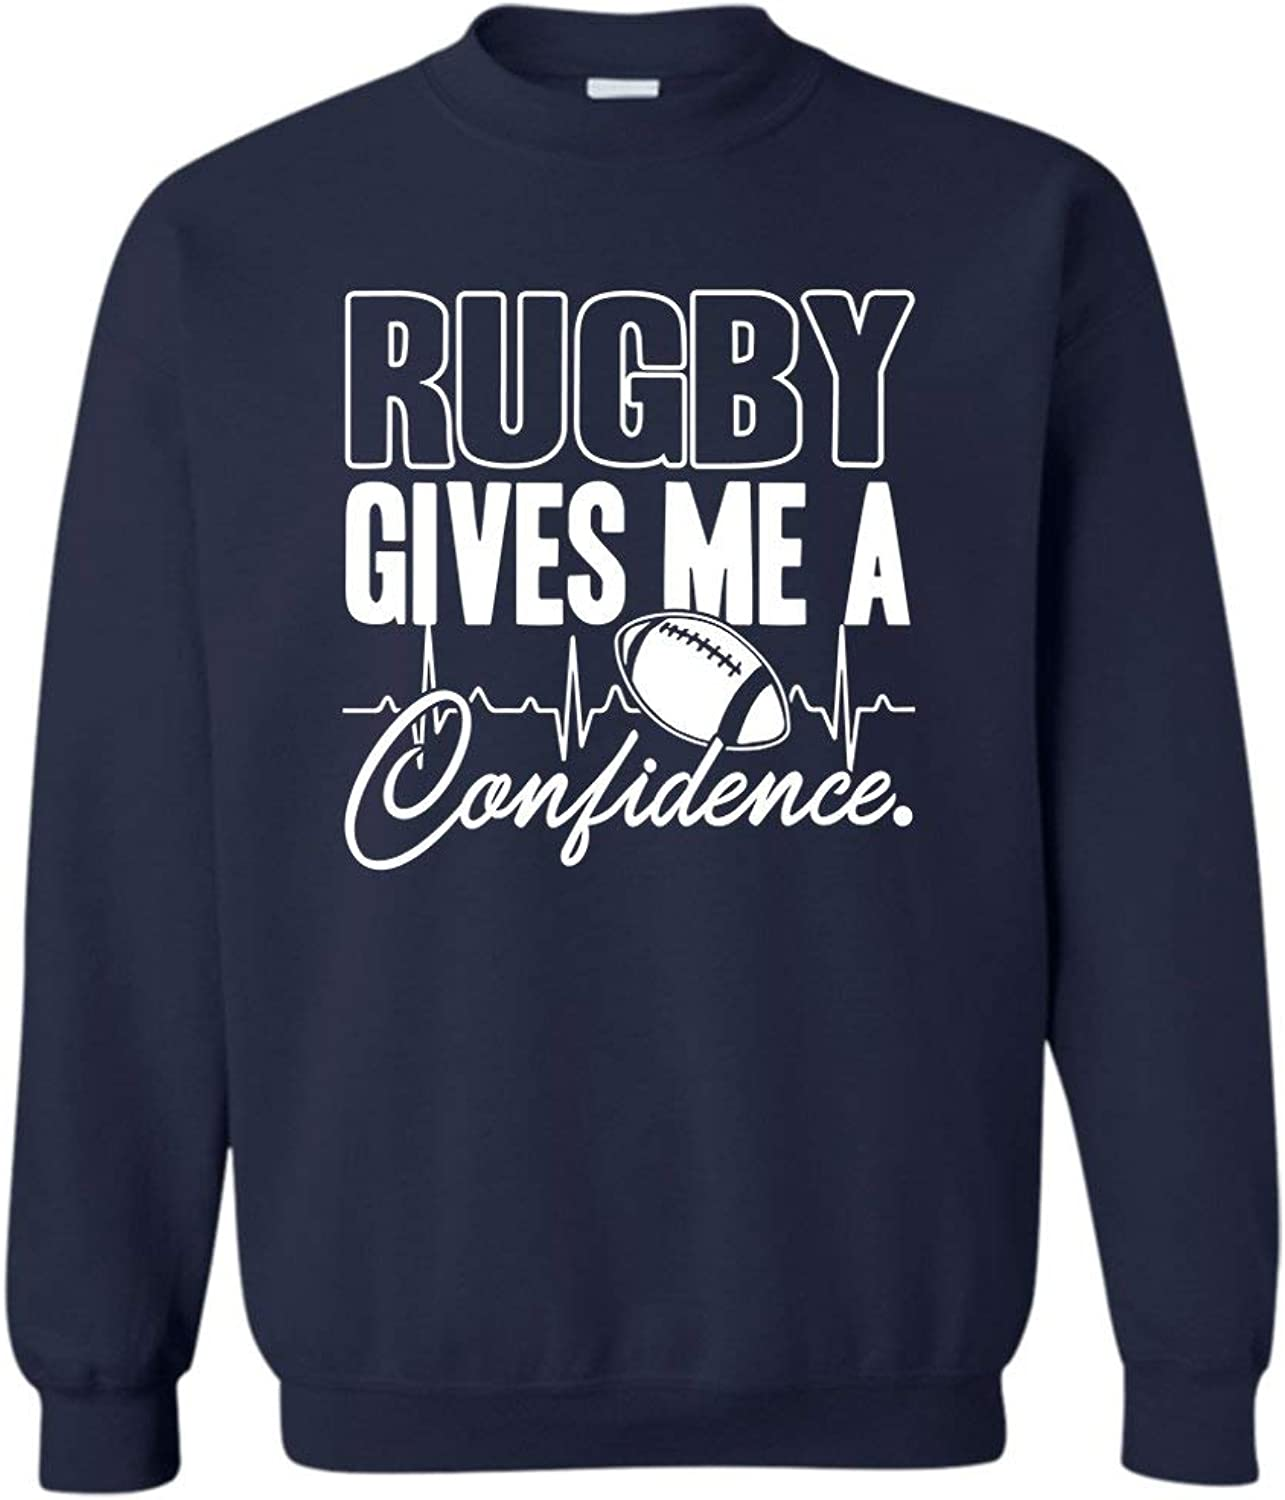 Rugby Gives Me A Confidence Sweatshirt, Long Sleeve Shirt, Clothes